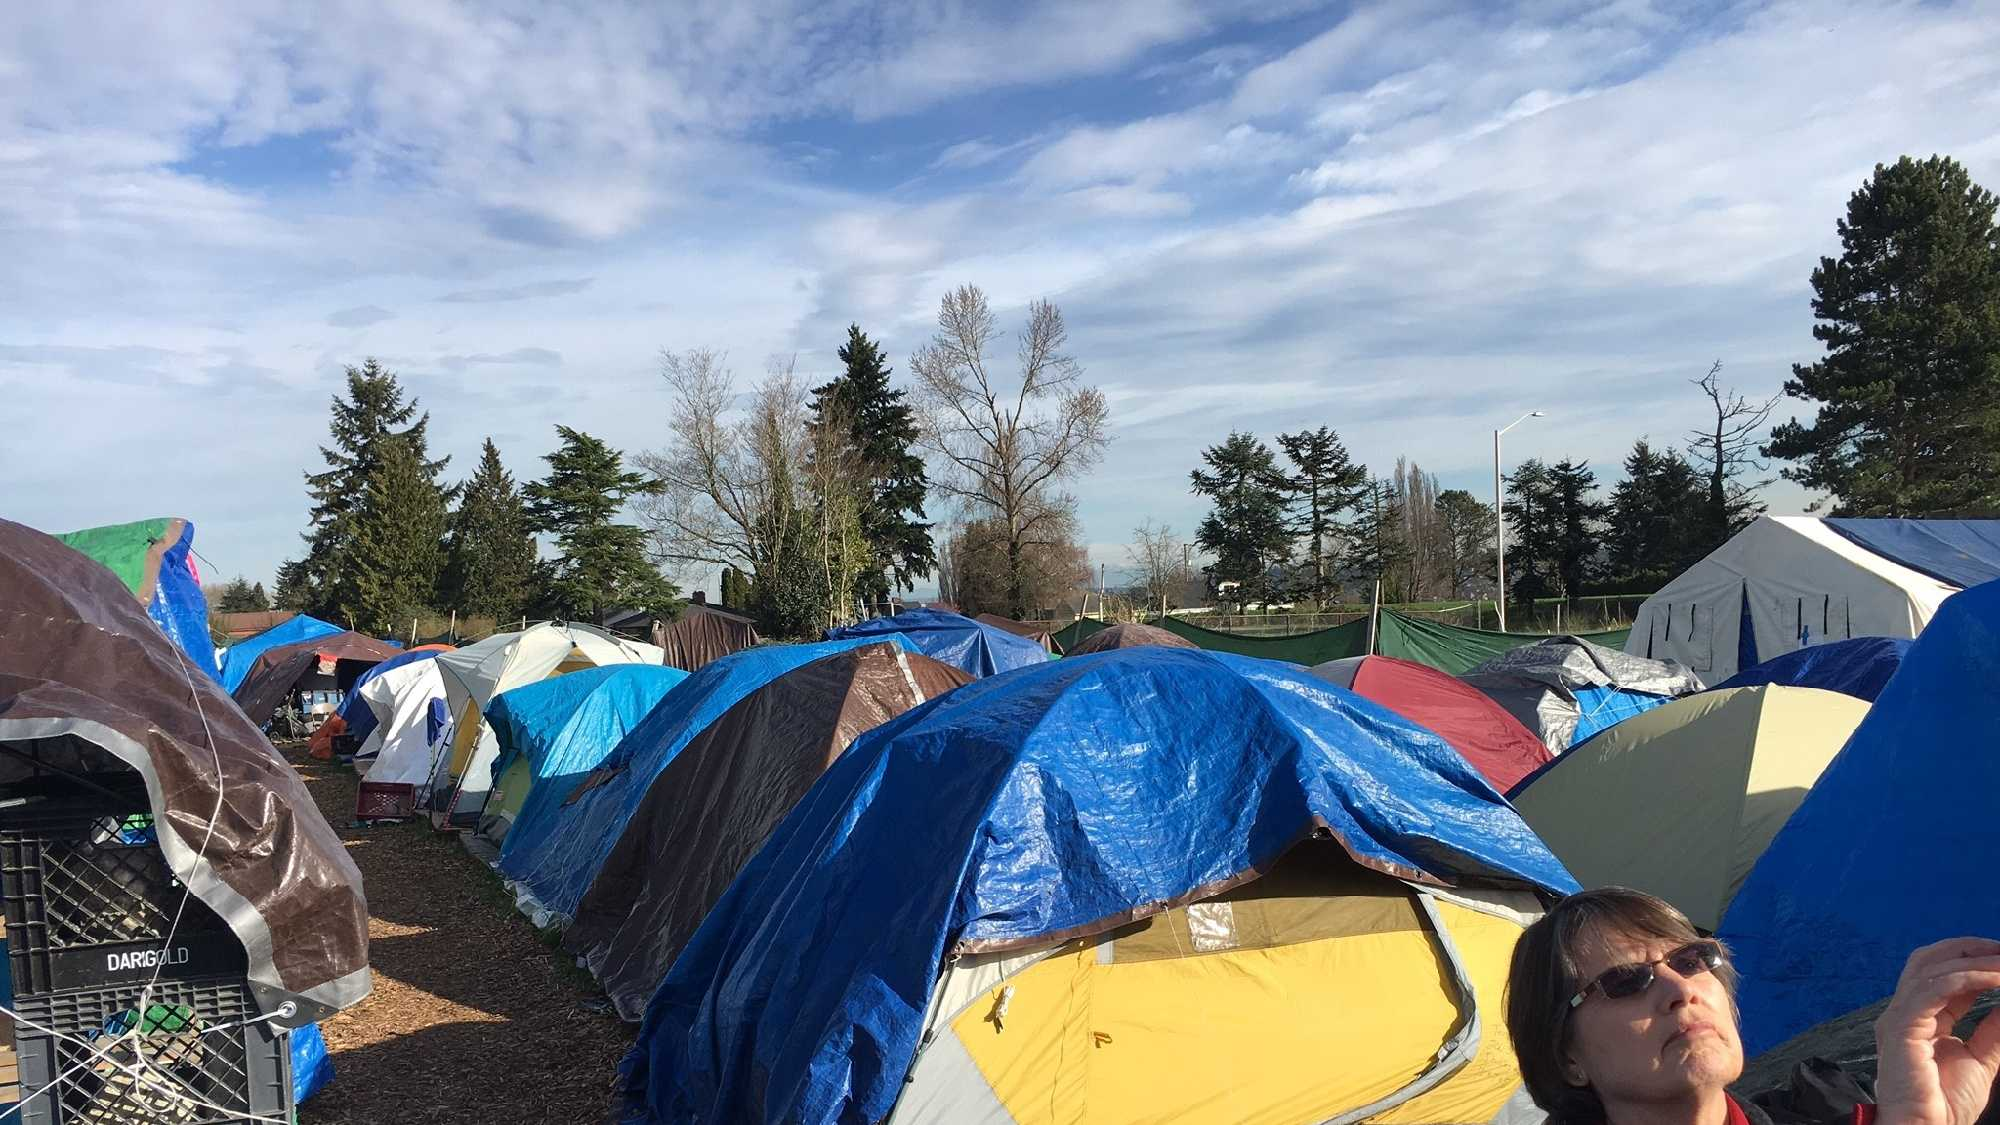 The city of Seattle has sanctioned homeless encampments like this for about 15 years.